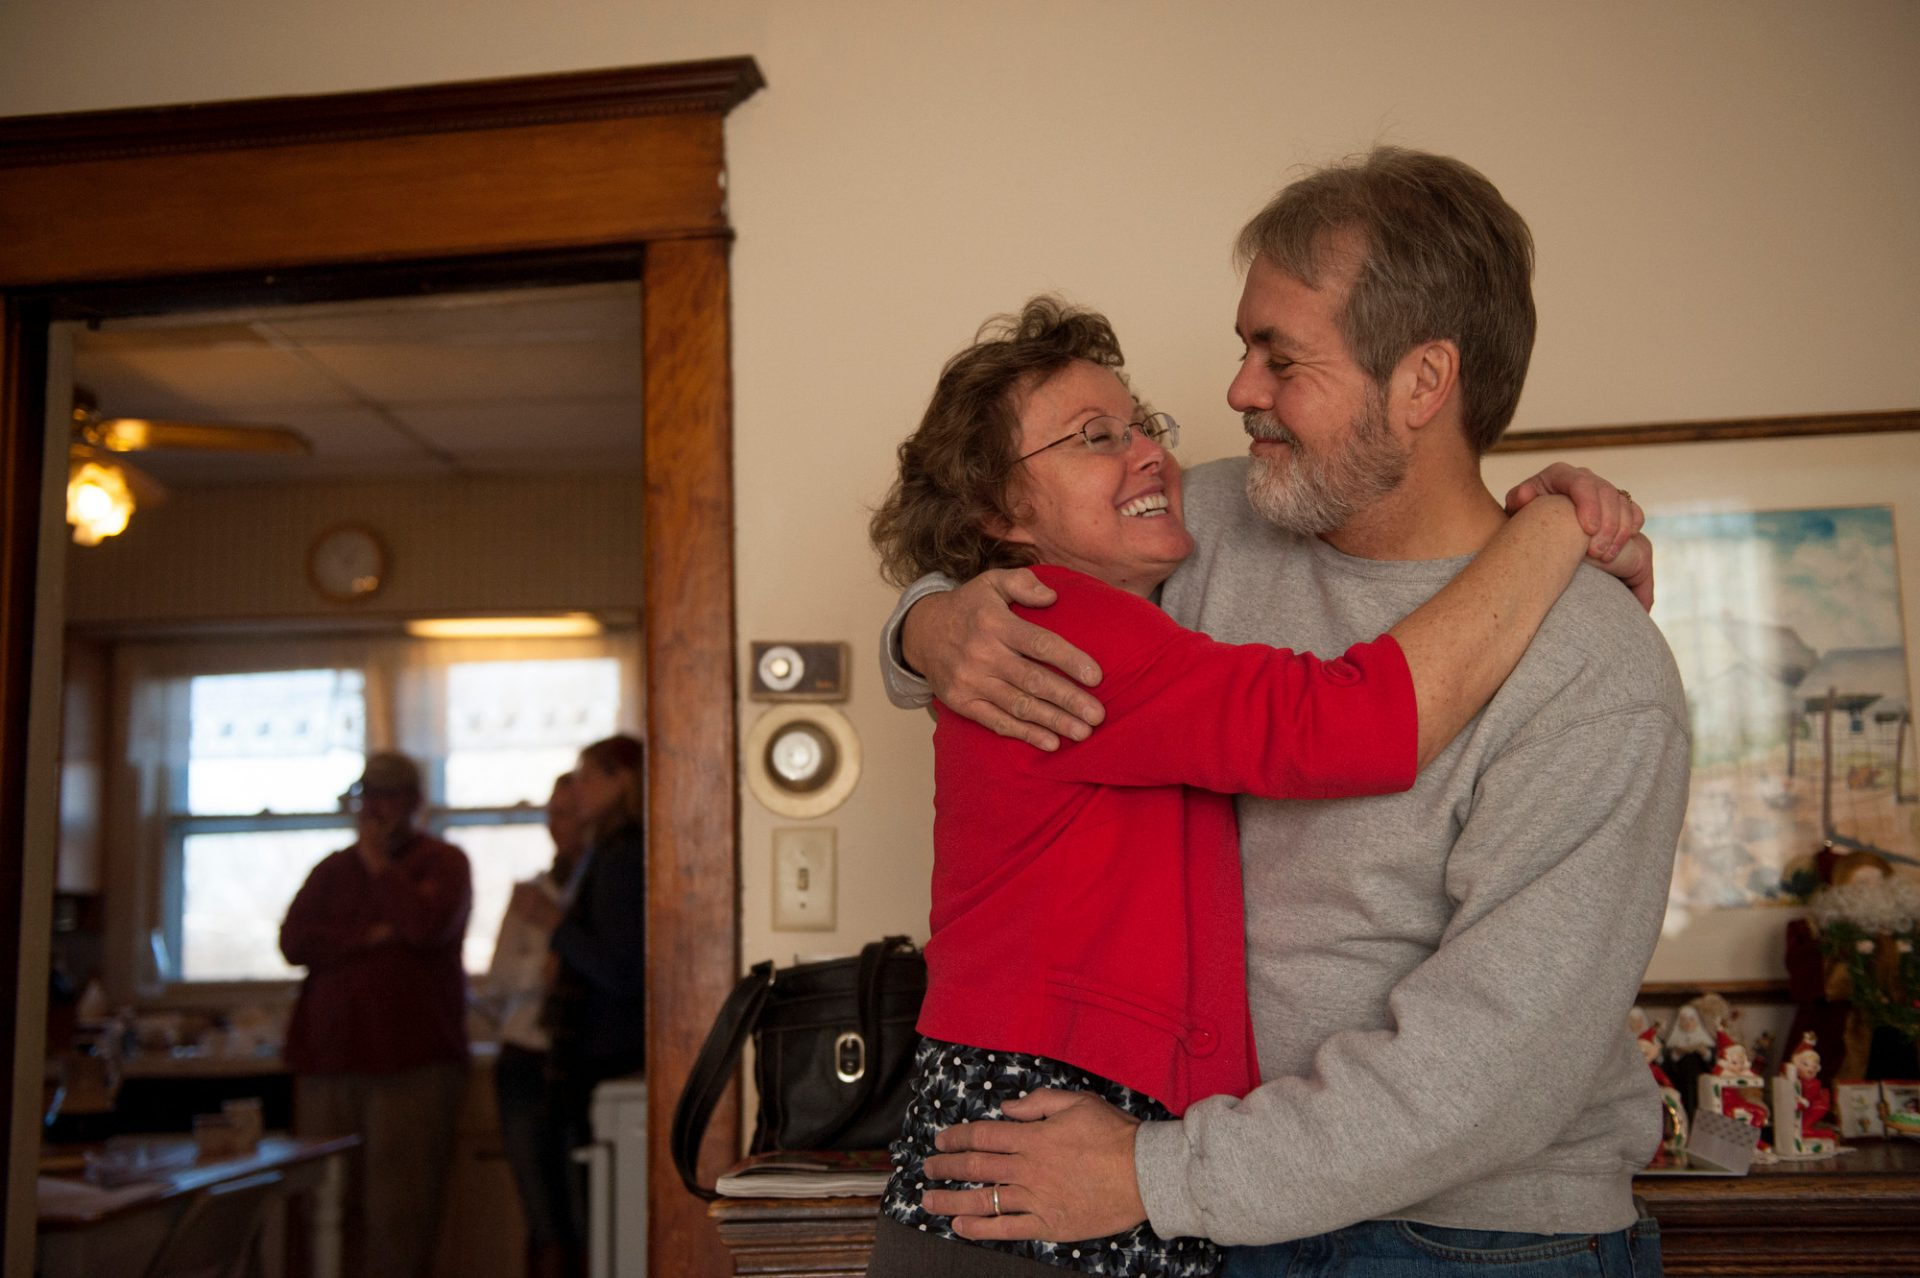 Photo: A husband and wife embrace in Lincoln, Nebraska.